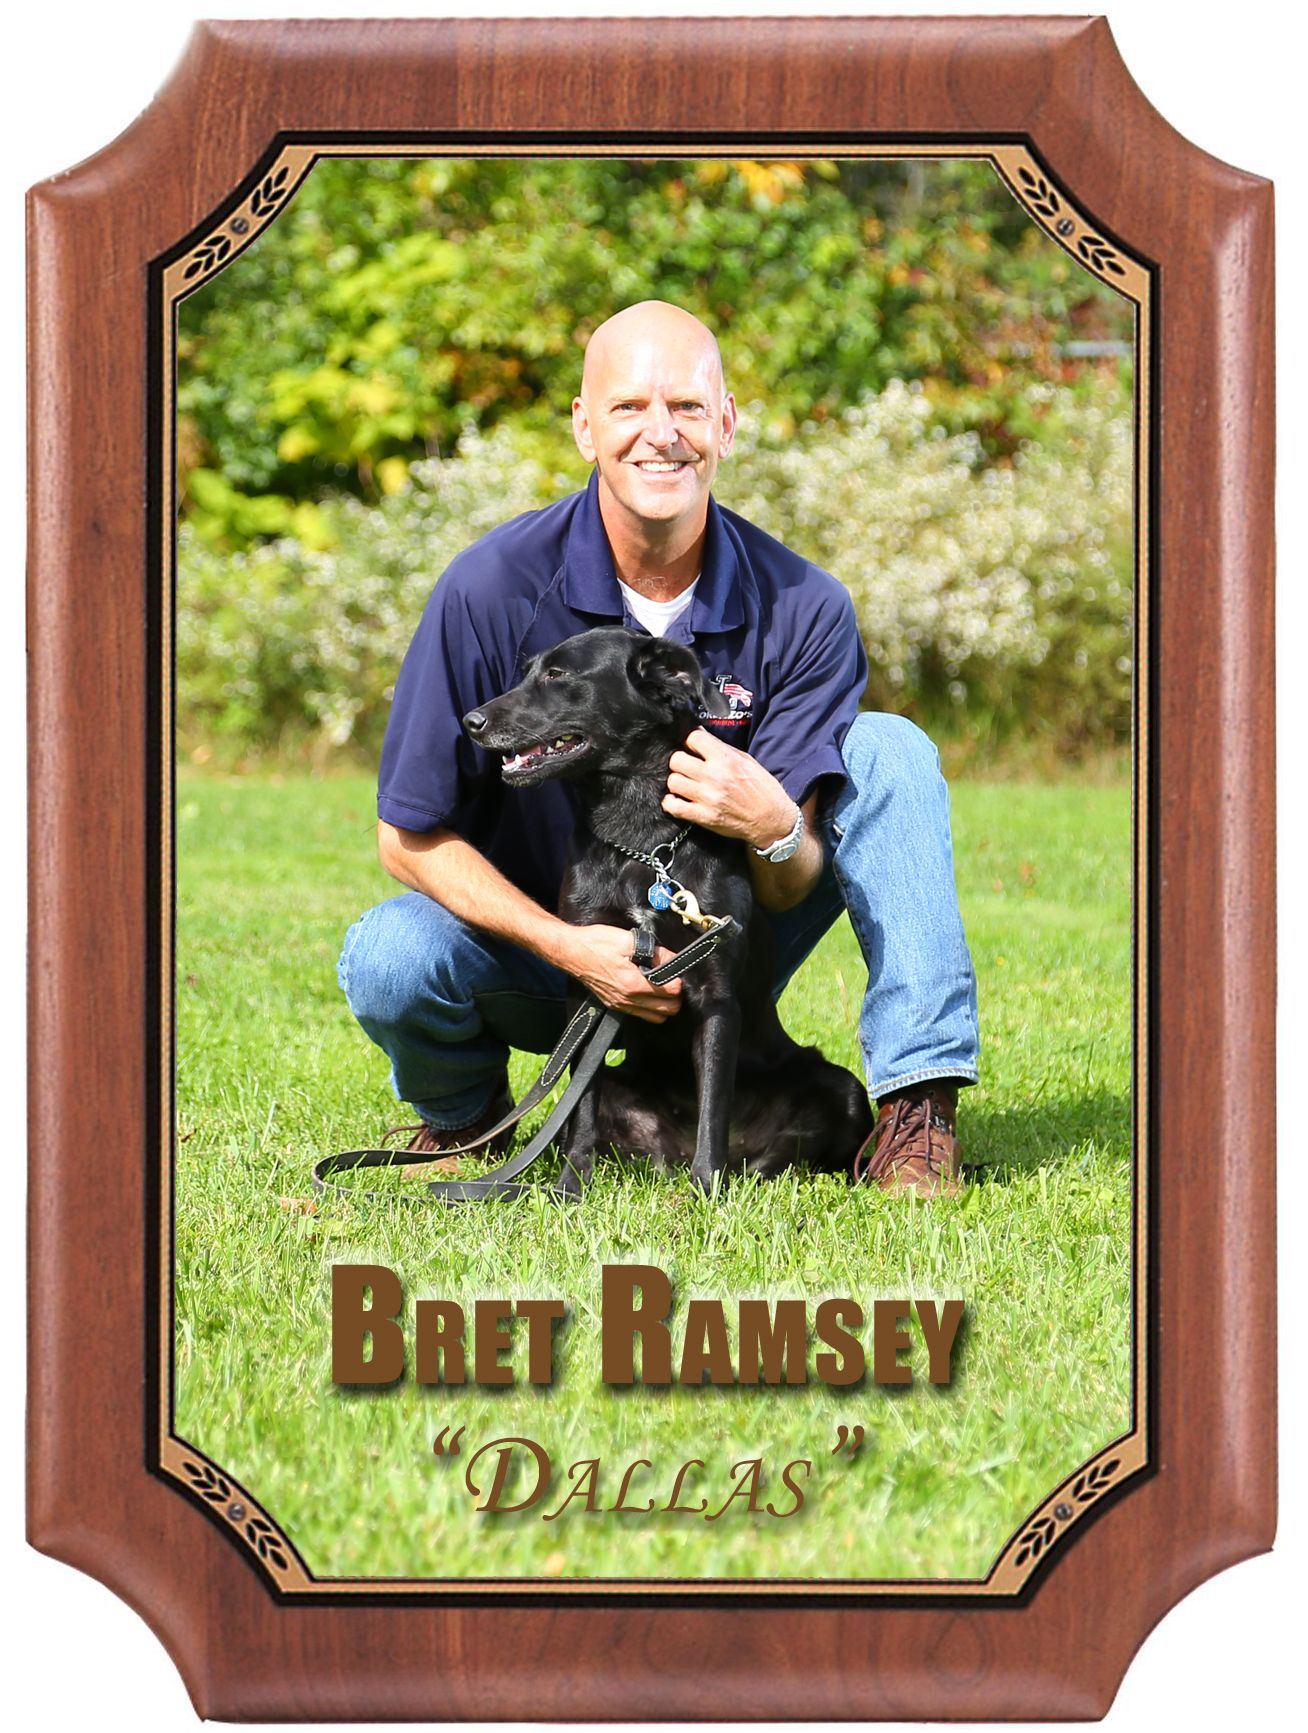 Bret Ramsey Is Our Dog Trainer In Dallas Texas His Canine